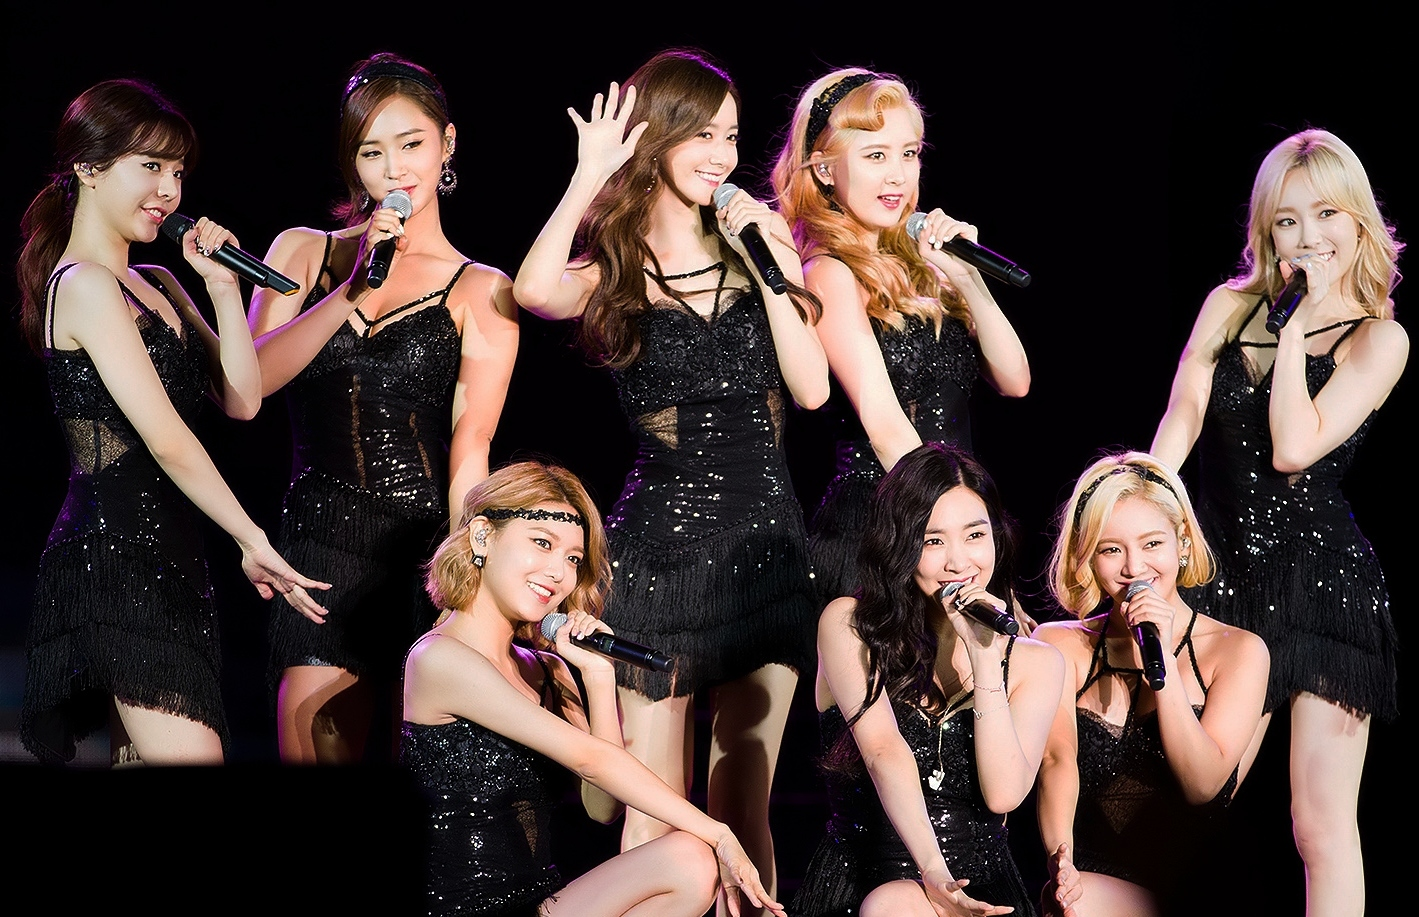 Girls'_Generation_at_DMC_Festival_2015_MBC_Radio_DJ_Concert_02